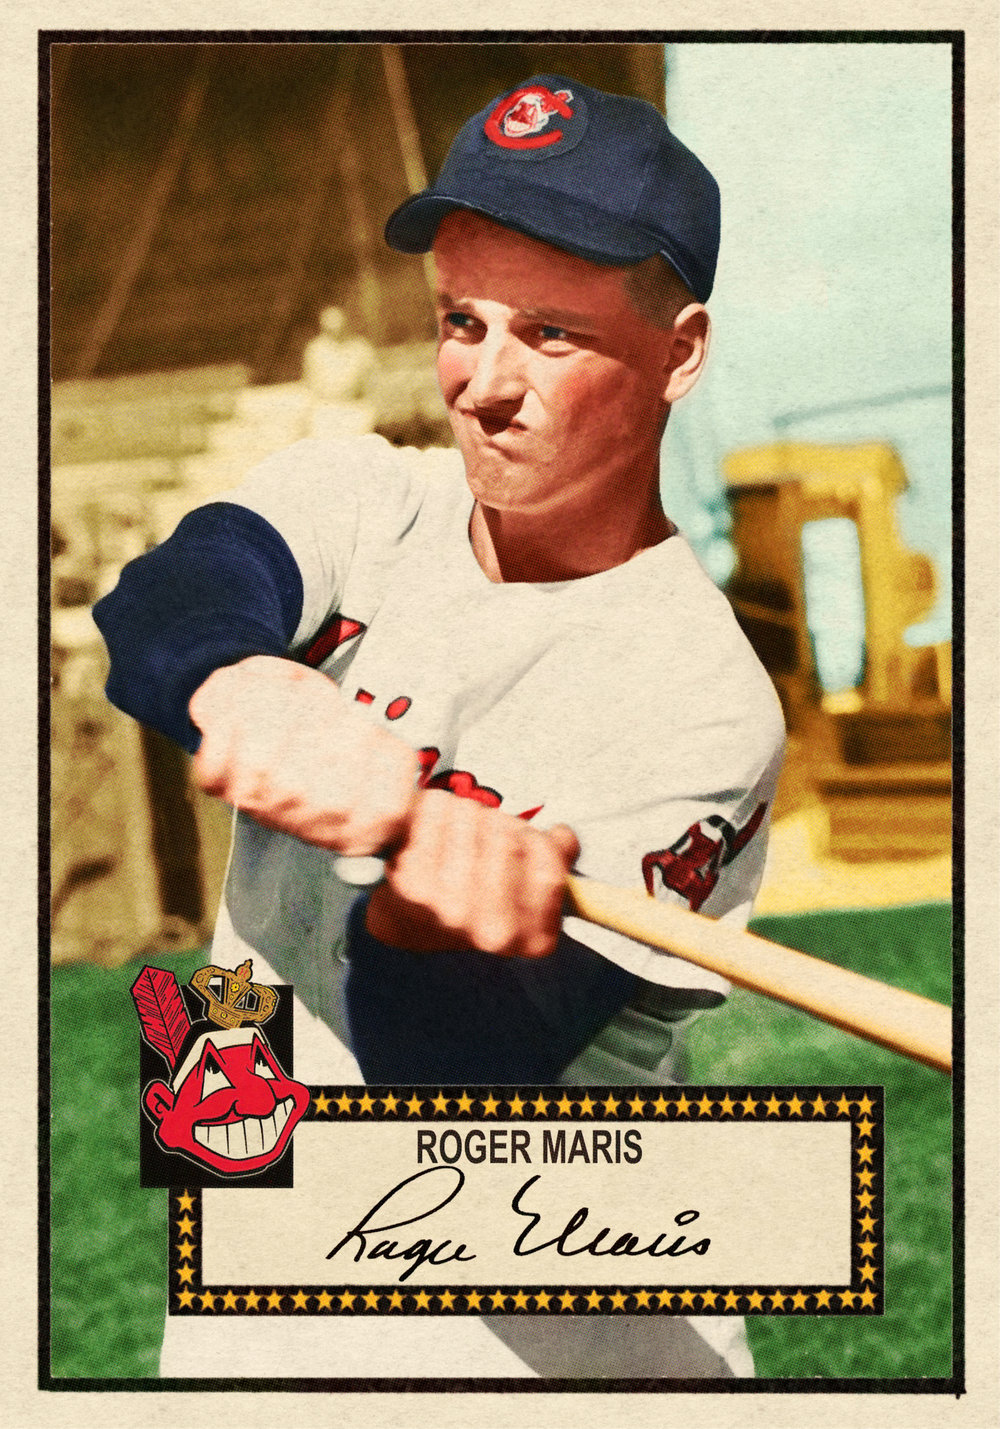 1952 BANTY RED BASEBALL STARS SERIES #152 ROGER MARIS - 1/20/17 Auction Closes at181.49 USD - Current Population of 1